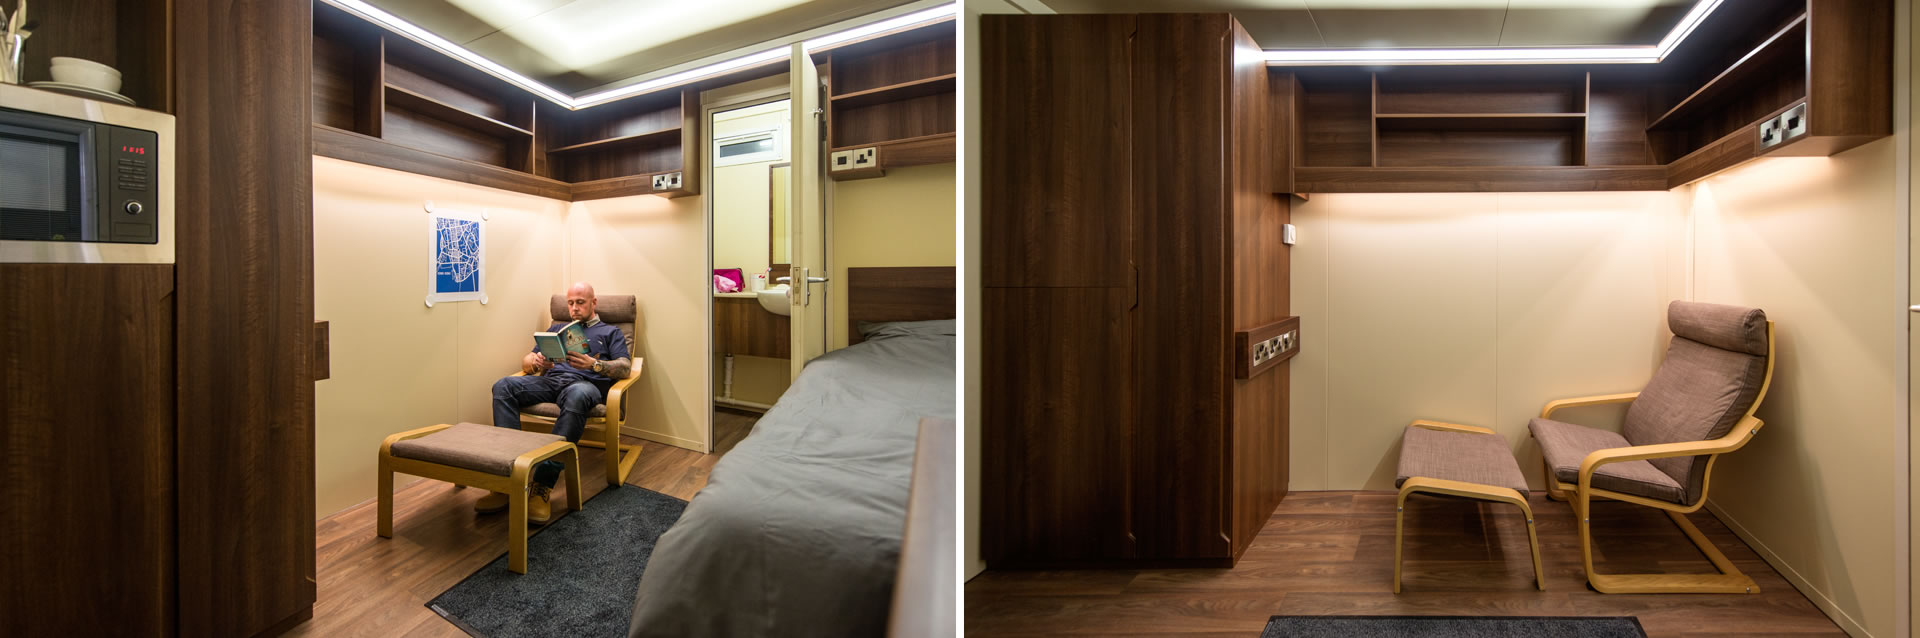 Bunkabin Bespoke Sleeper Unit - Lounge Option